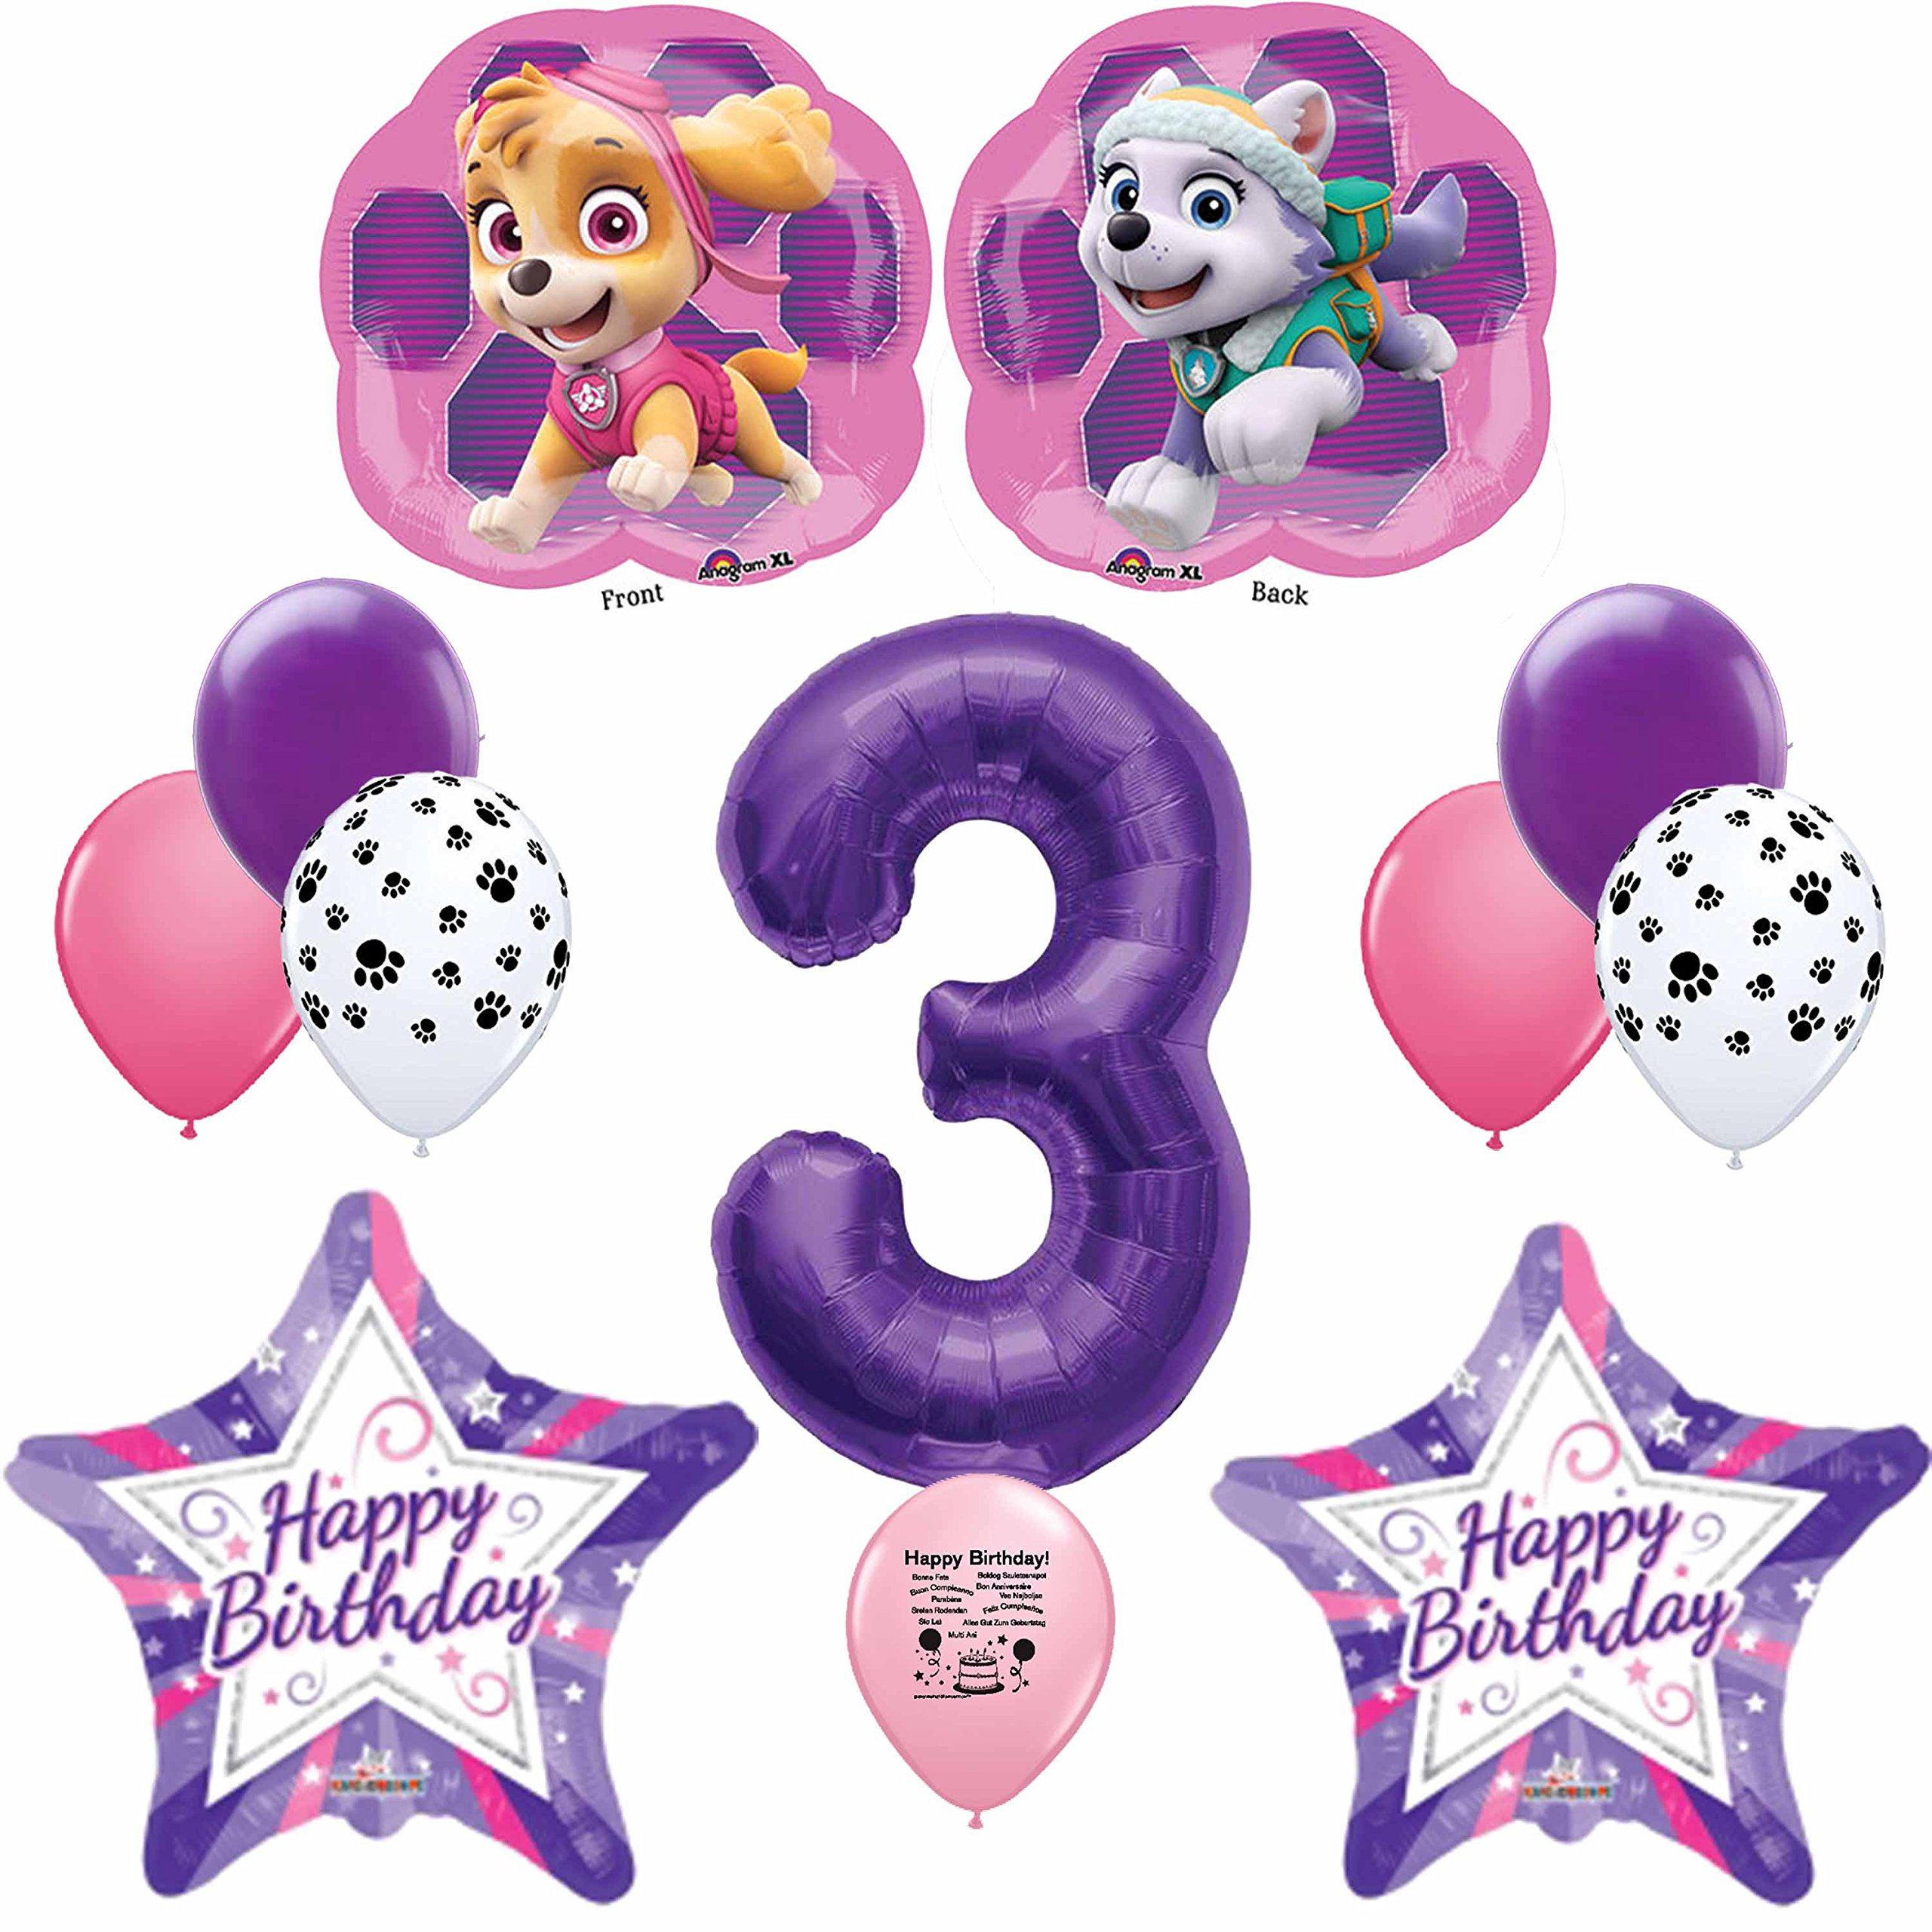 Details About Paw Patrol Party Supplies Skye Pink Happy 3rd Birthday Balloon Decoration Kit